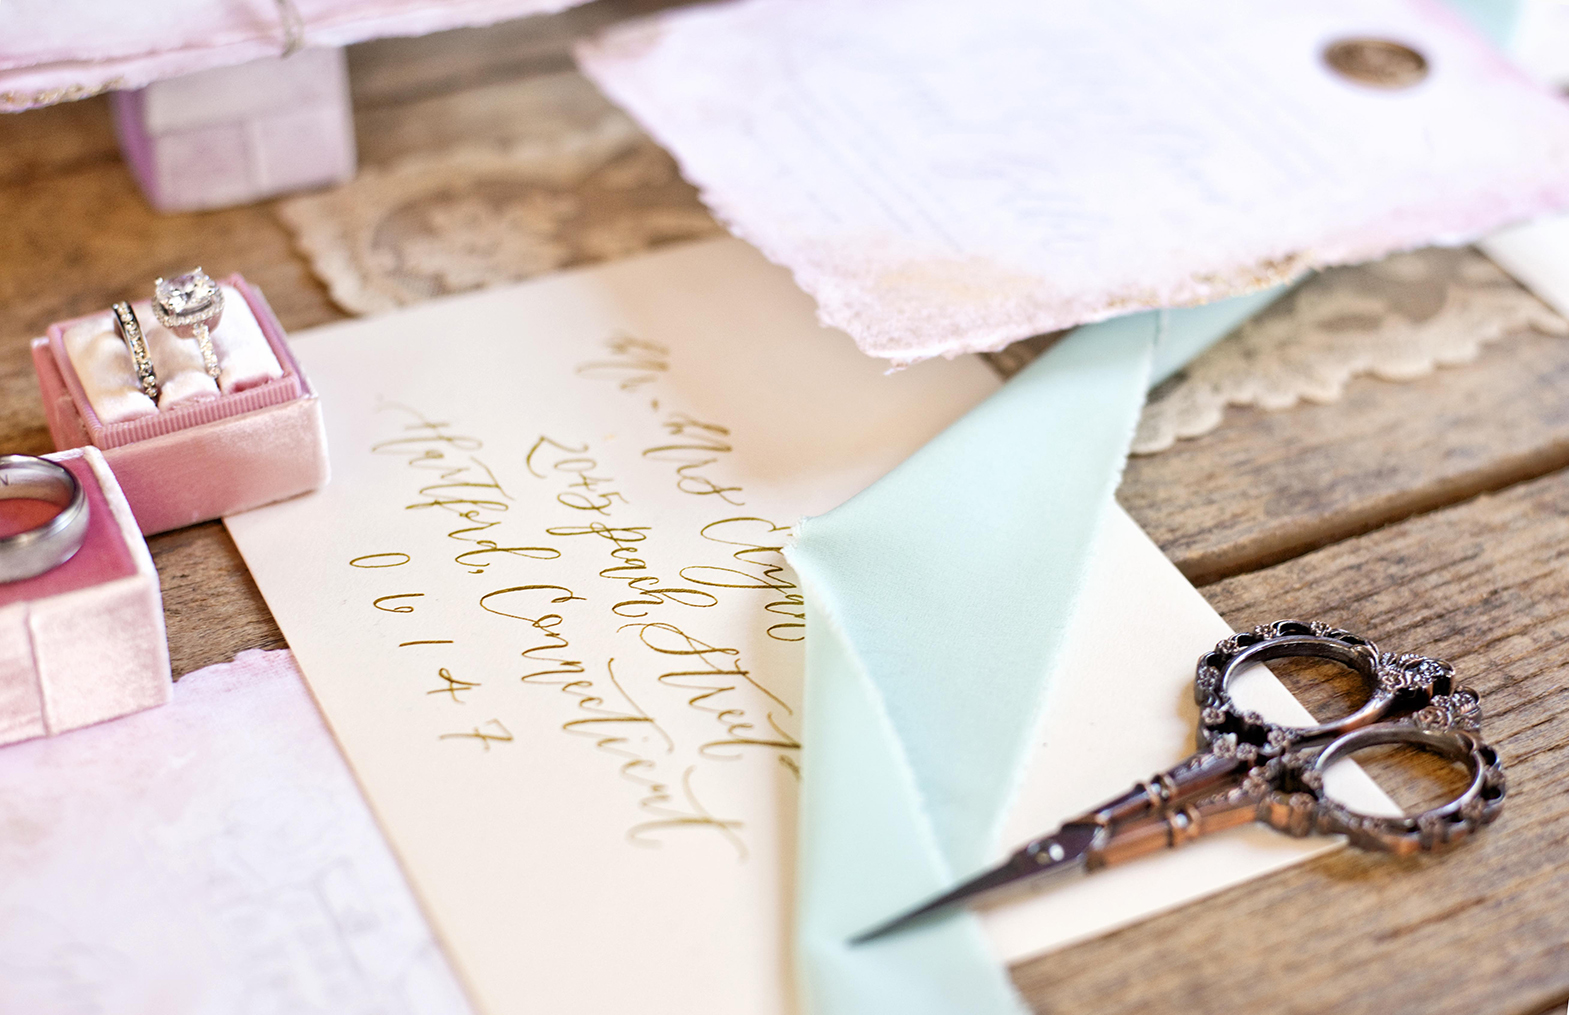 Sam Allen Creates Wedding Invitation Envelope Addressing, Photography and Styling by Abbe Foreman